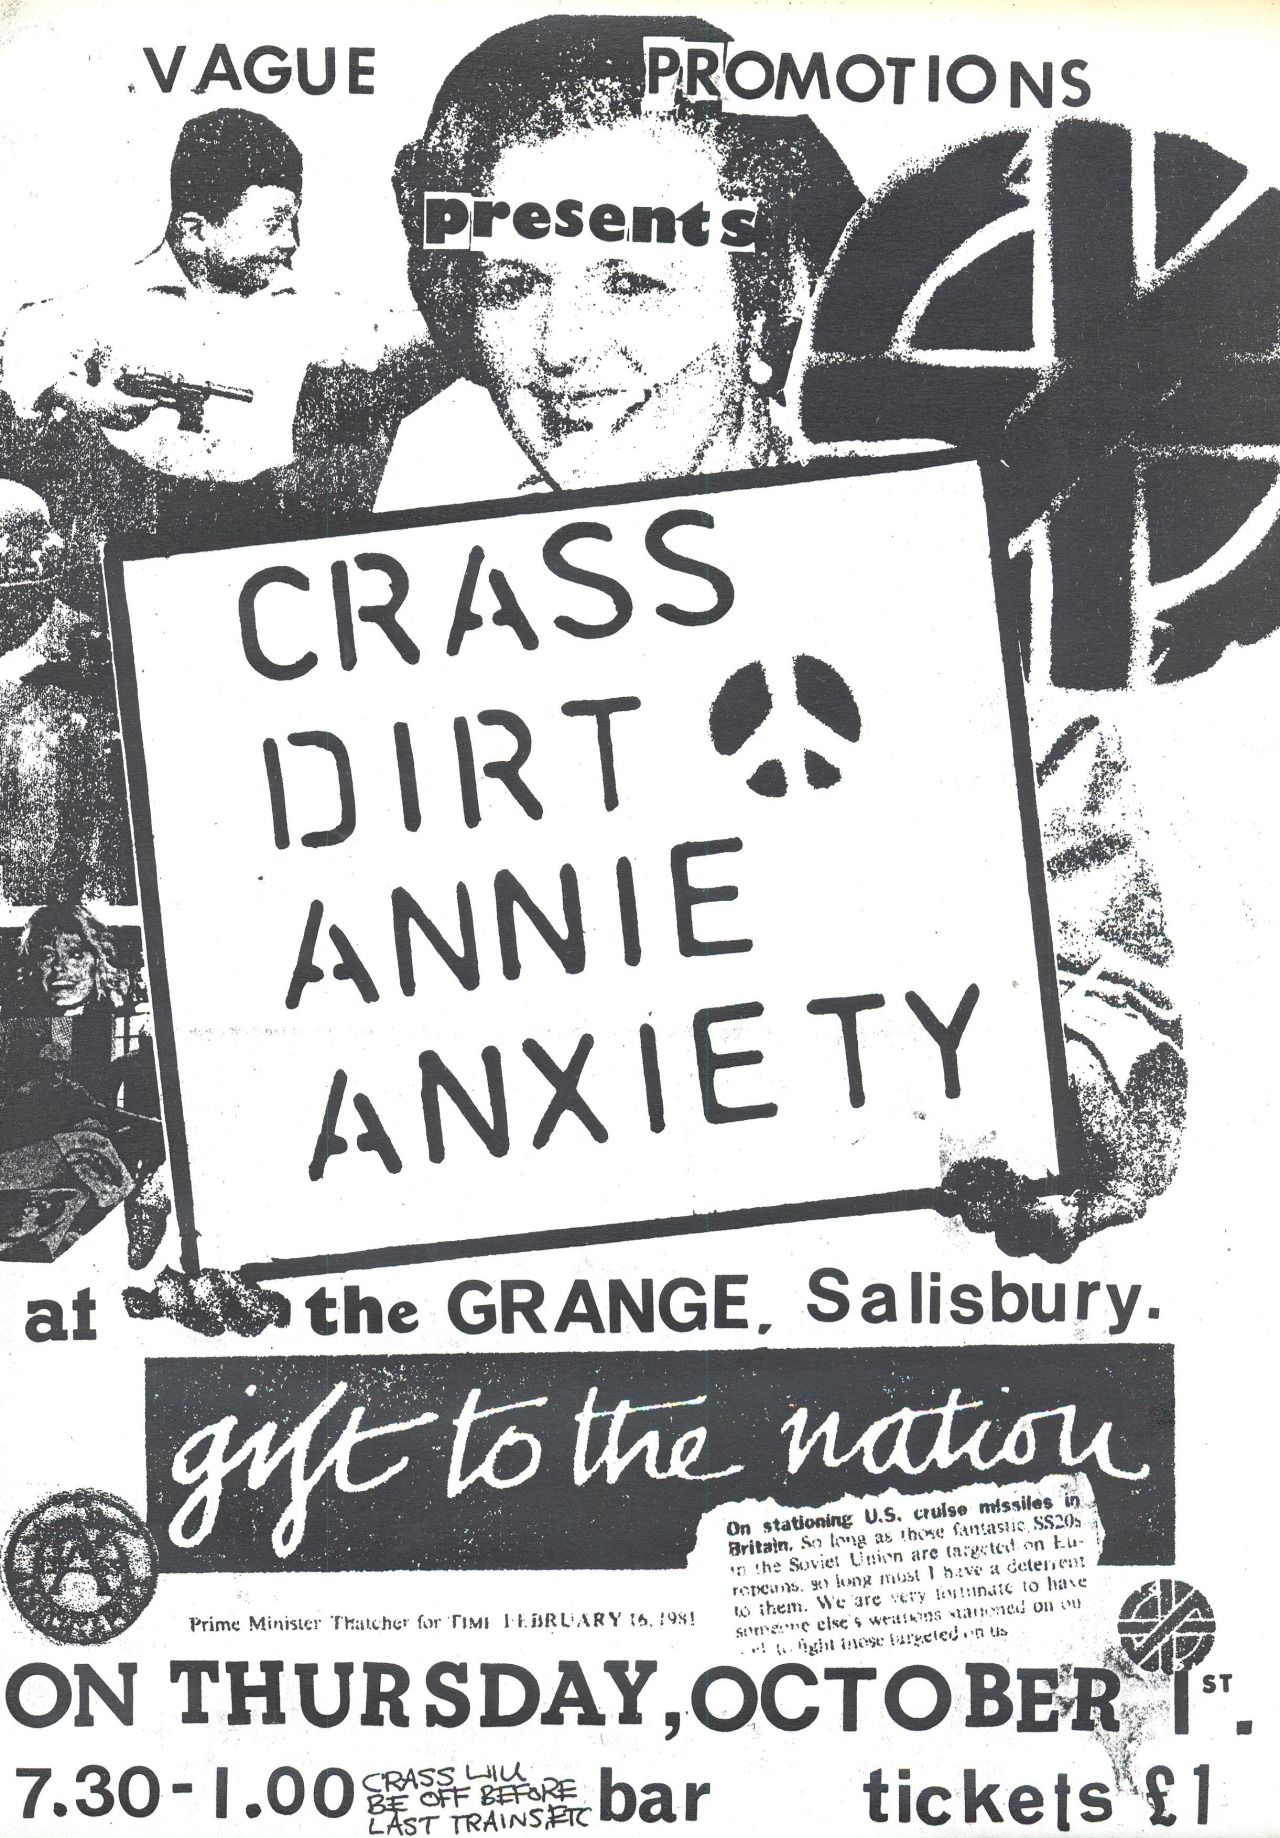 Pin by rob strunk on shows pinterest punk anarcho punk and band posters rock posters crust punk rock bands punk rock flyers wave anarchy art designs voltagebd Image collections